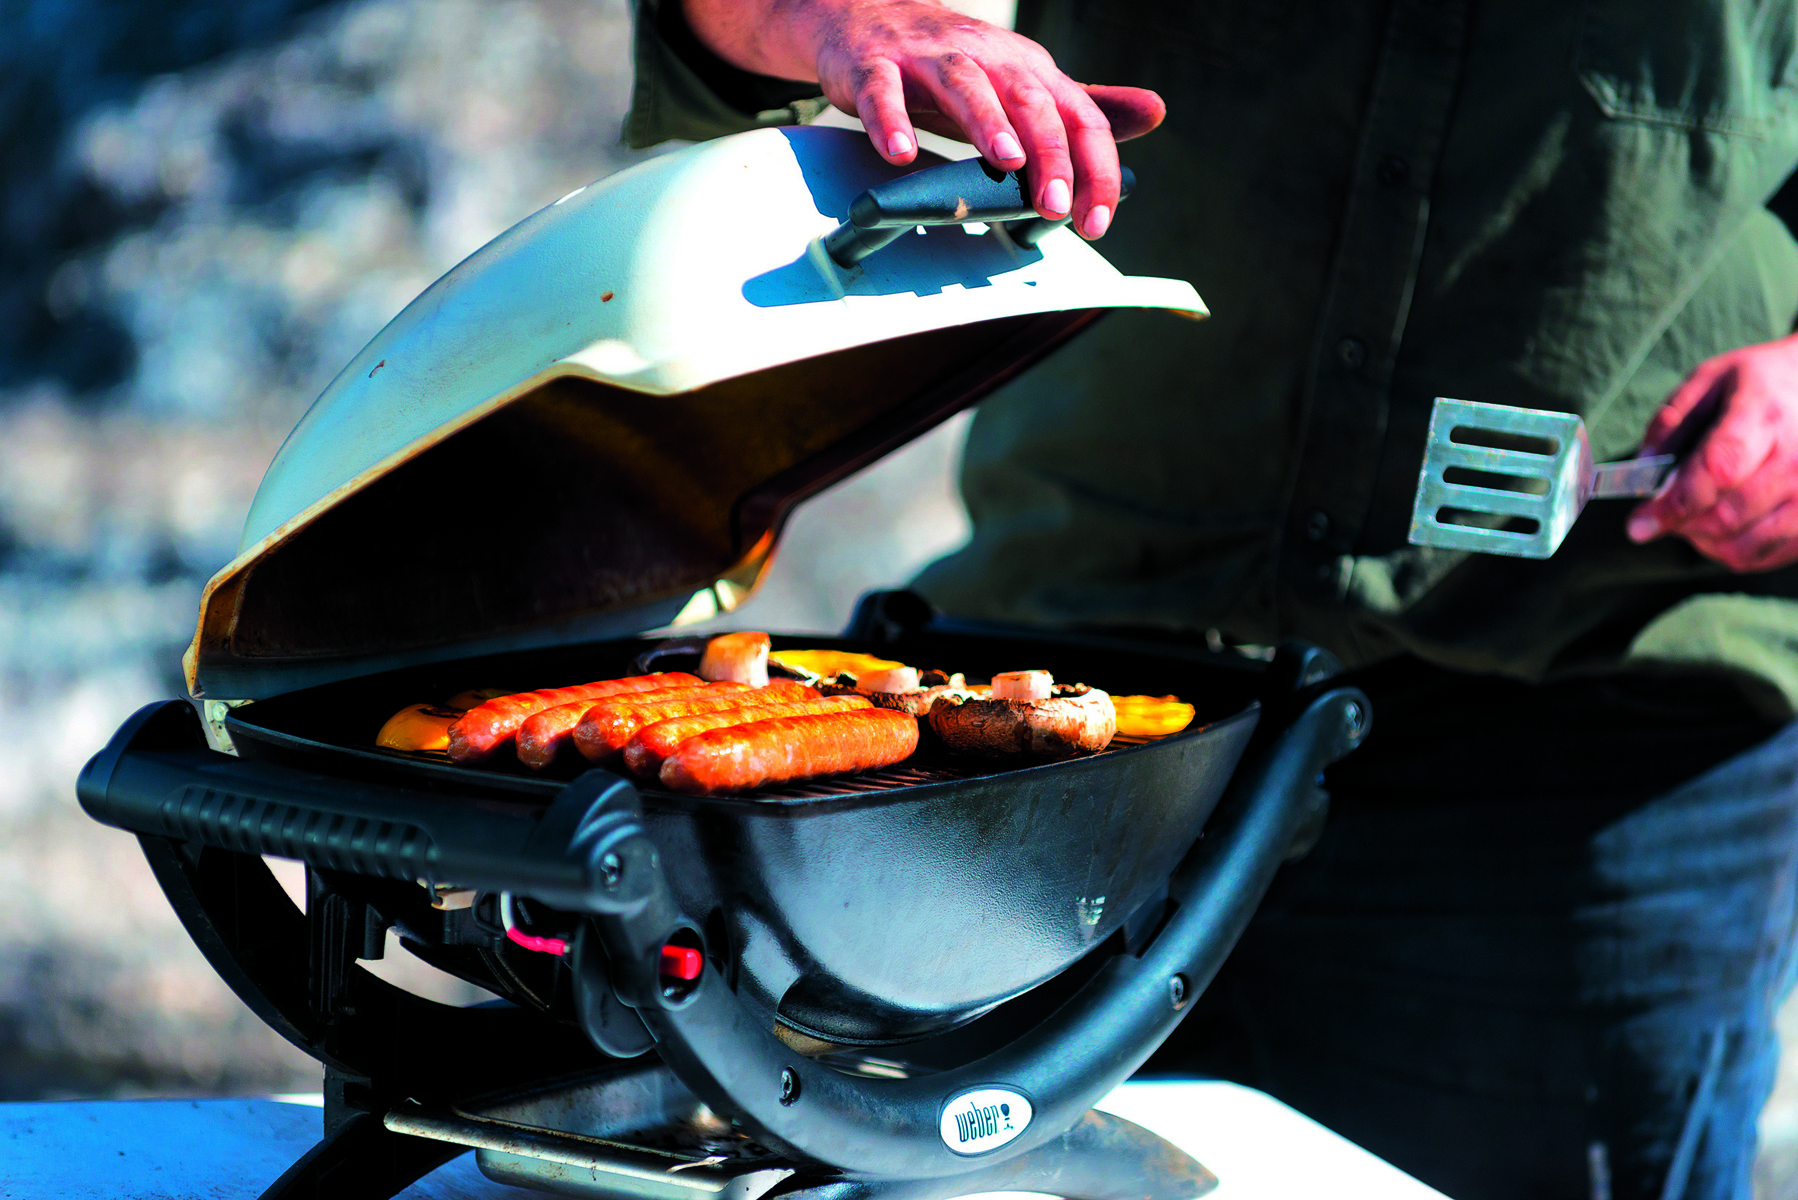 Man cooking on a Weber barbecue